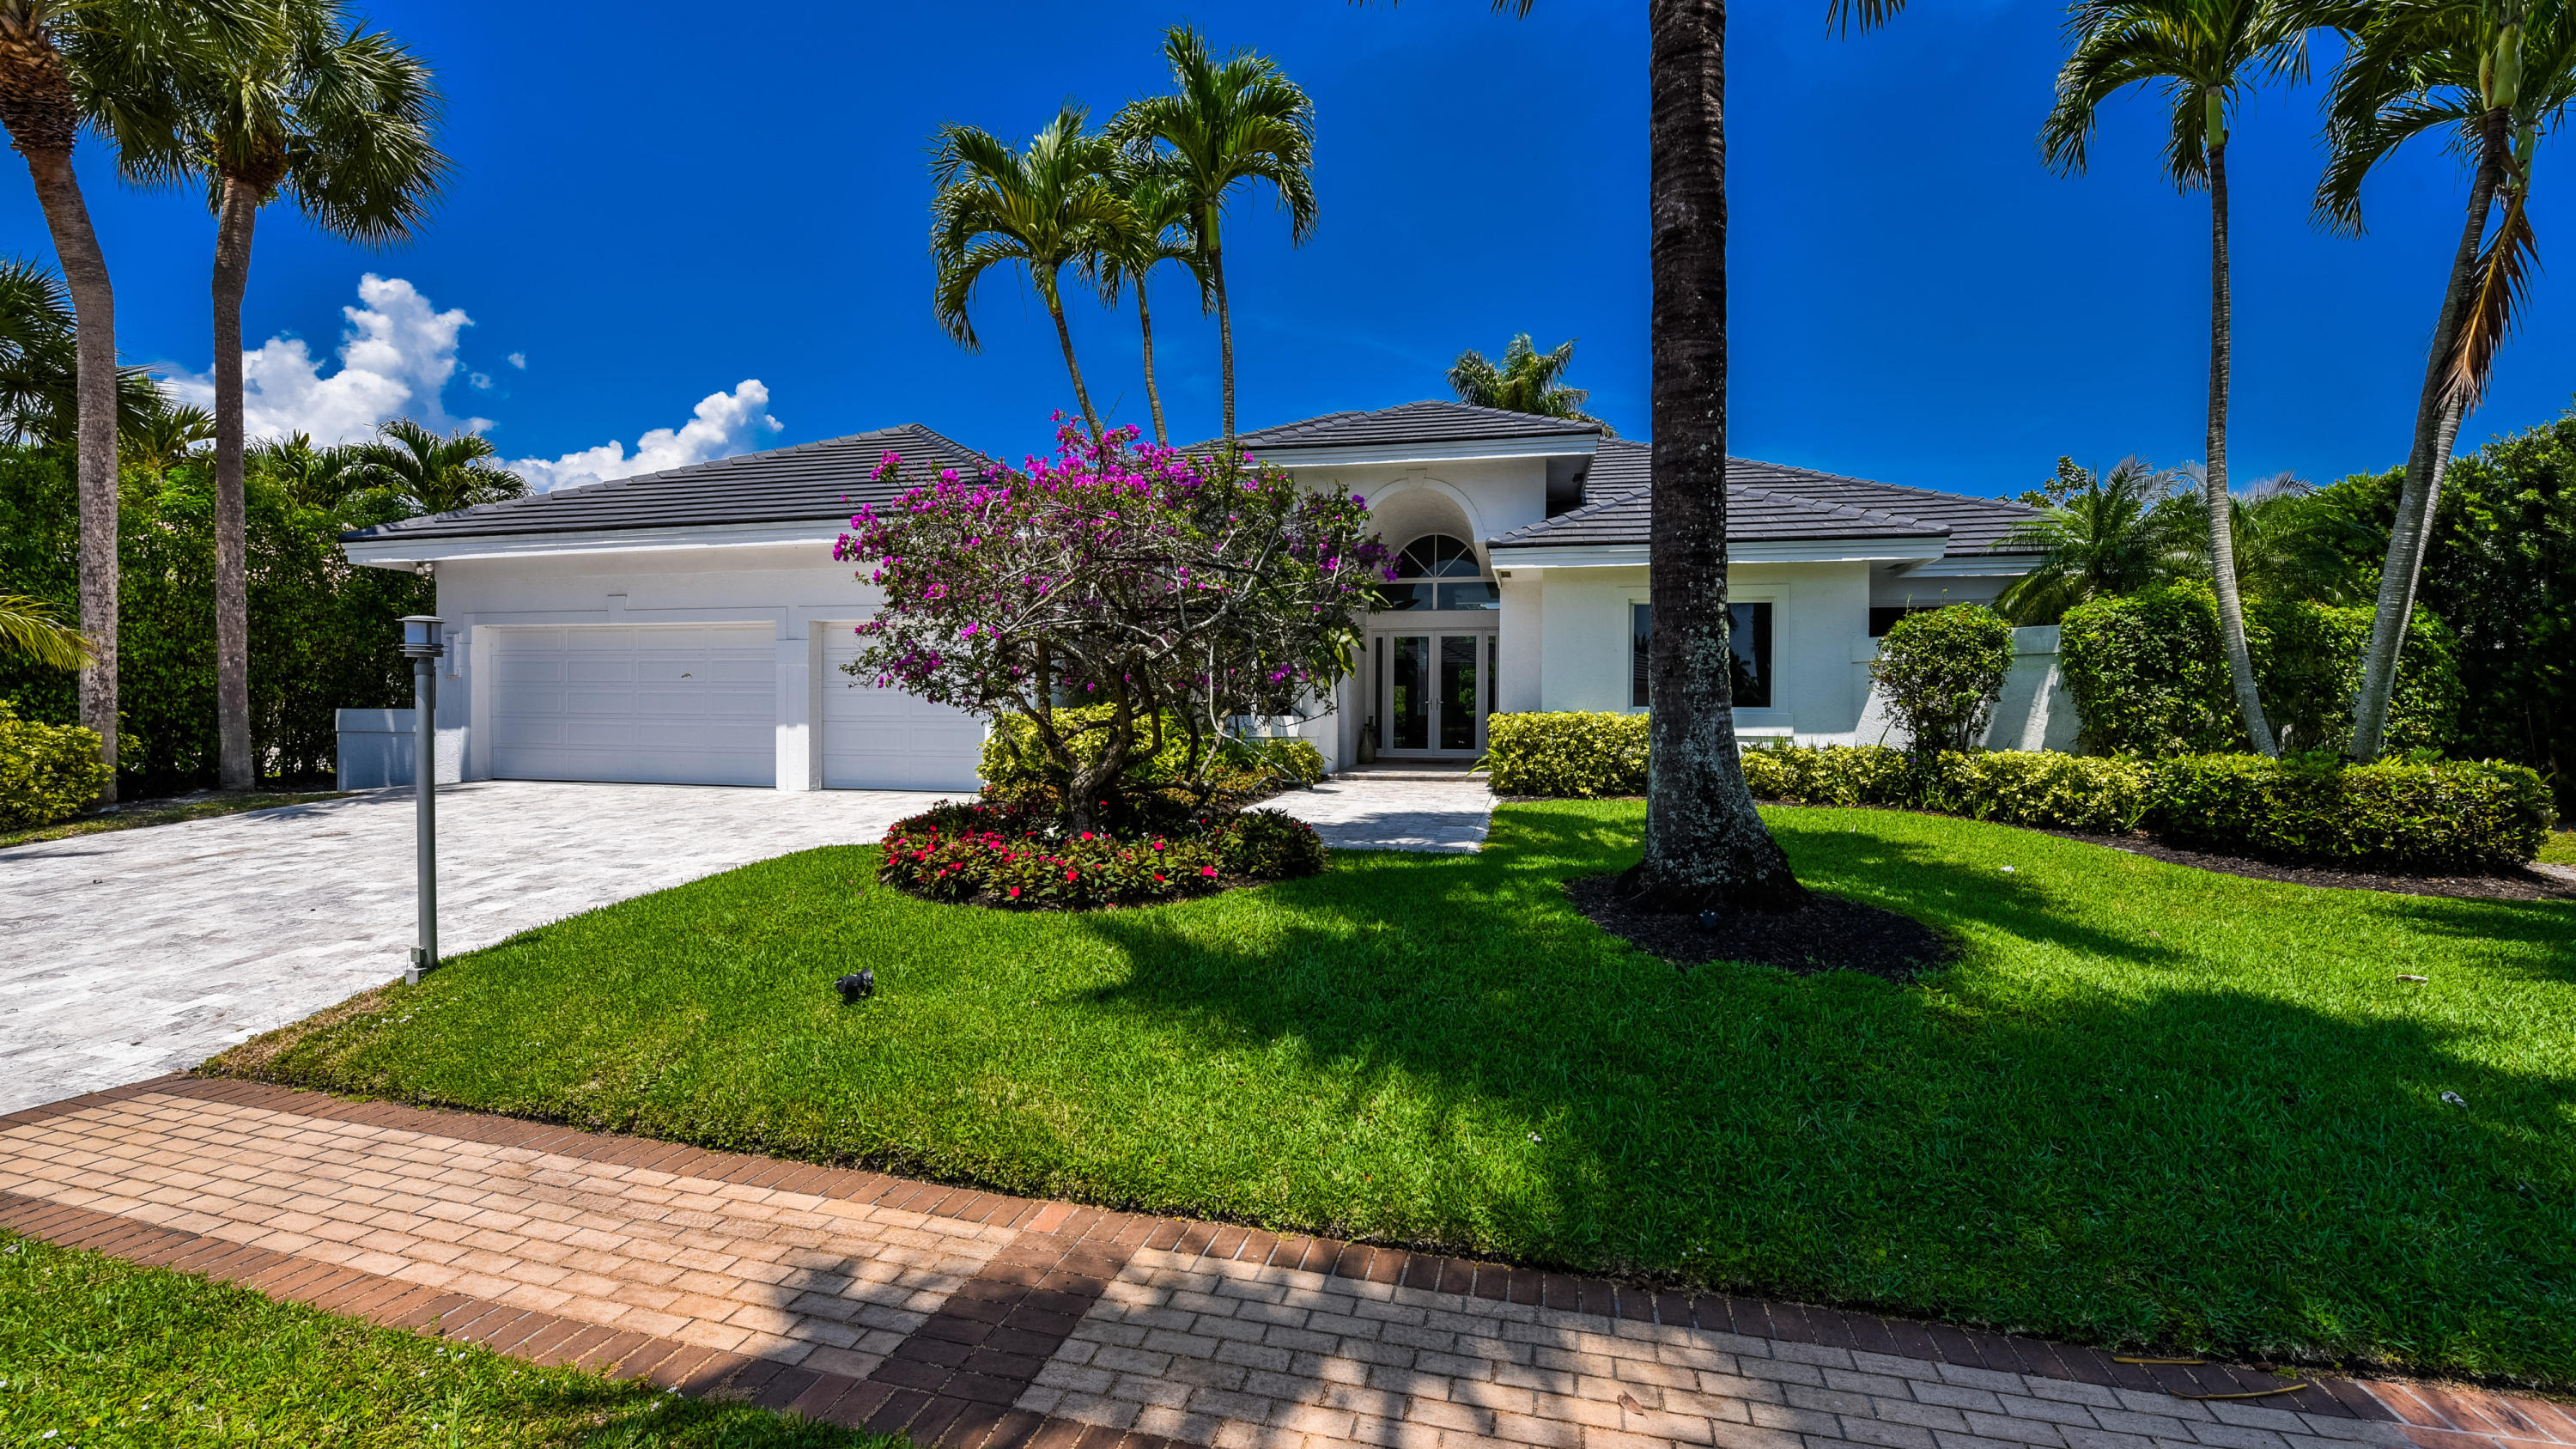 17576 Scarsdale Way, Boca Raton, Florida 33496, 5 Bedrooms Bedrooms, ,4 BathroomsBathrooms,Residential,For Sale,Scarsdale,RX-10578360